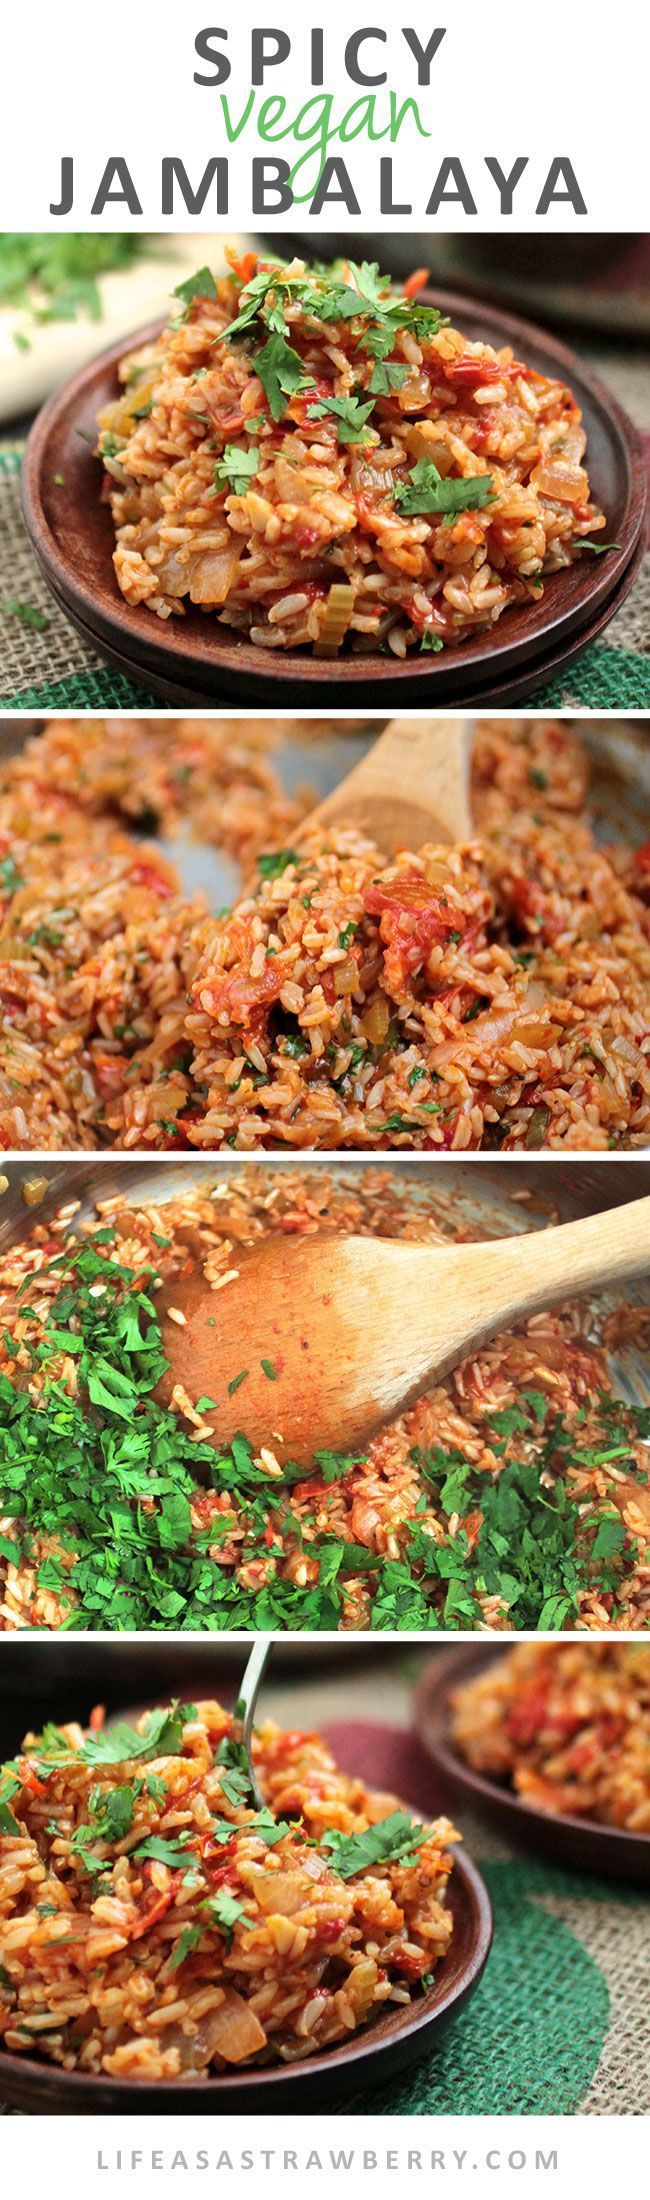 Spicy Vegan Jambalaya | This easy vegan recipe for jambalaya is full of fresh produce and gets a spicy kick from fresh j